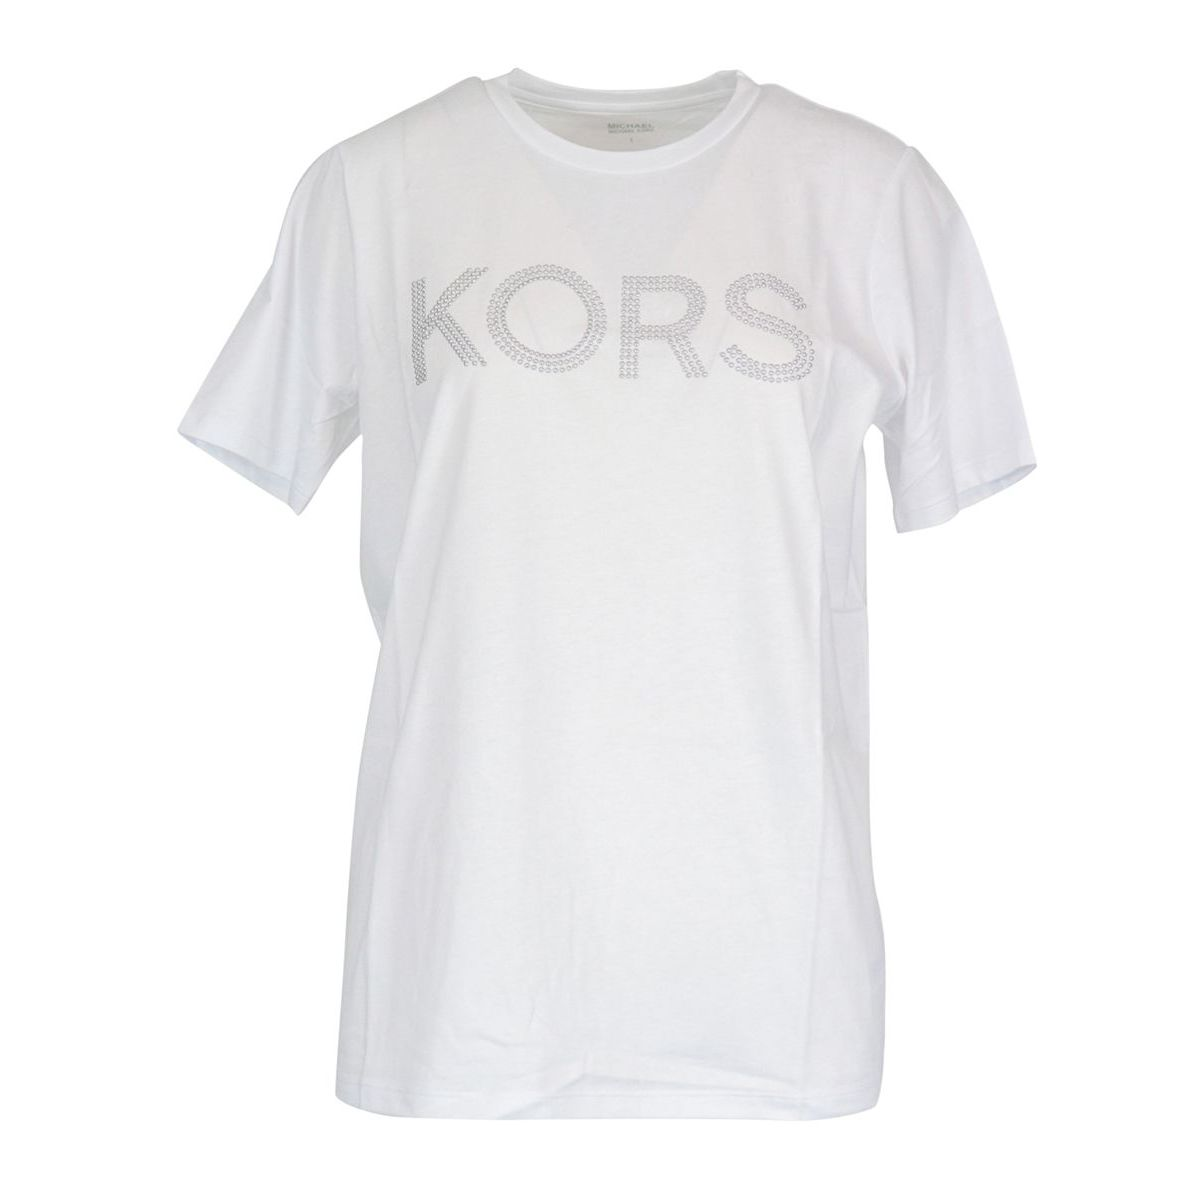 Cotton jersey T-shirt with logo and studs White Michael Kors